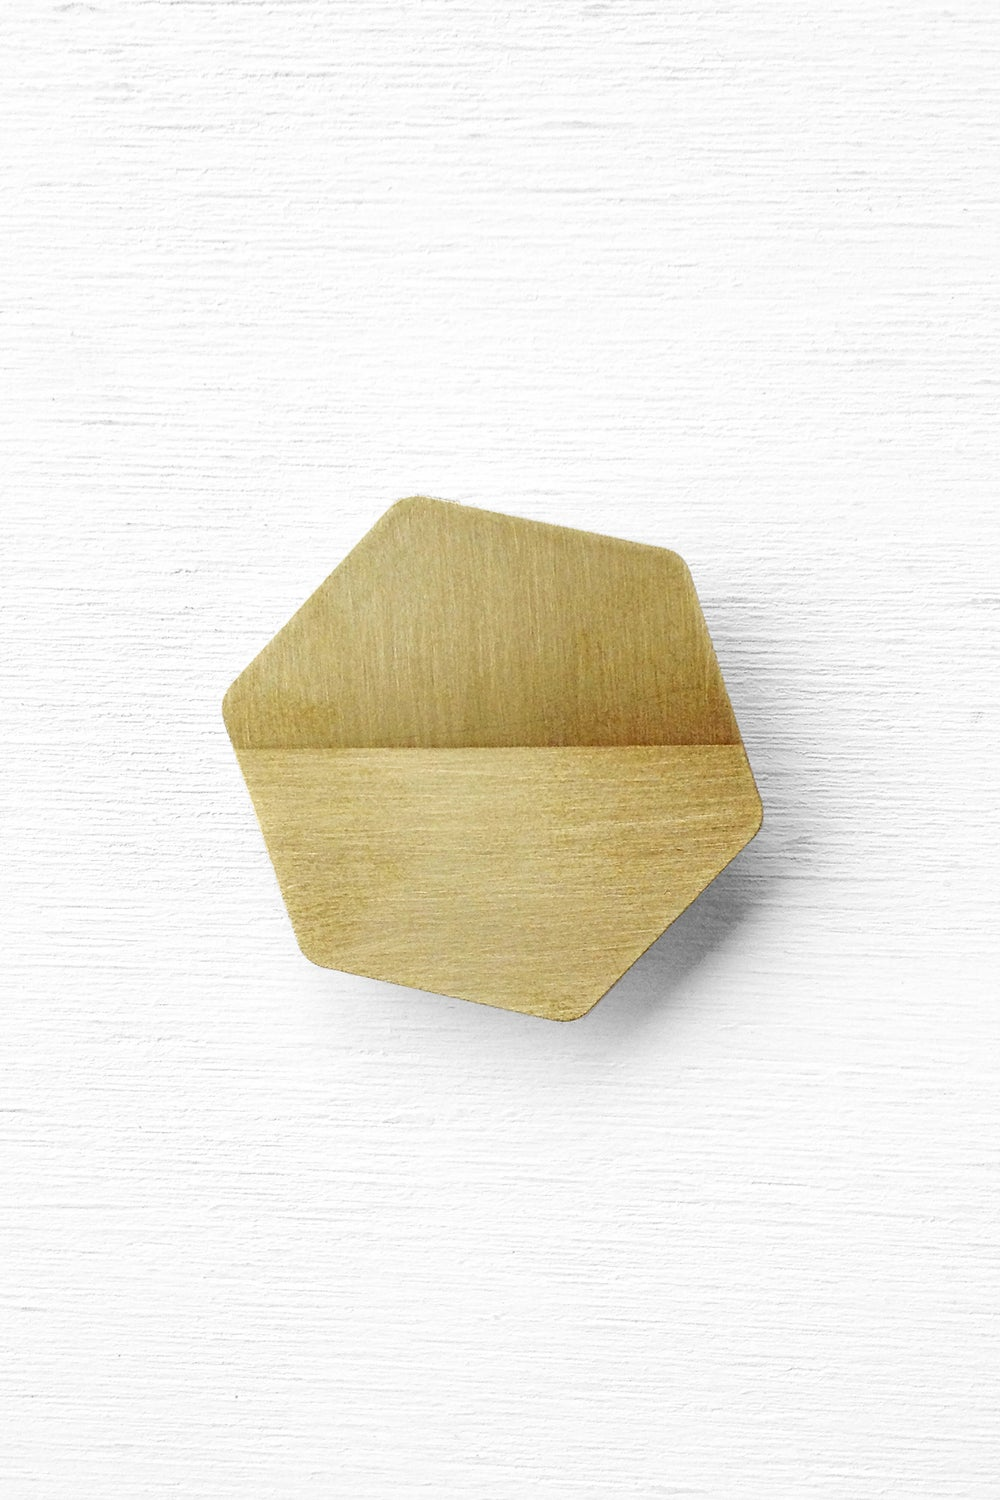 Image of ho•ri•zon: The intersection of the Earth and sky - Brooch